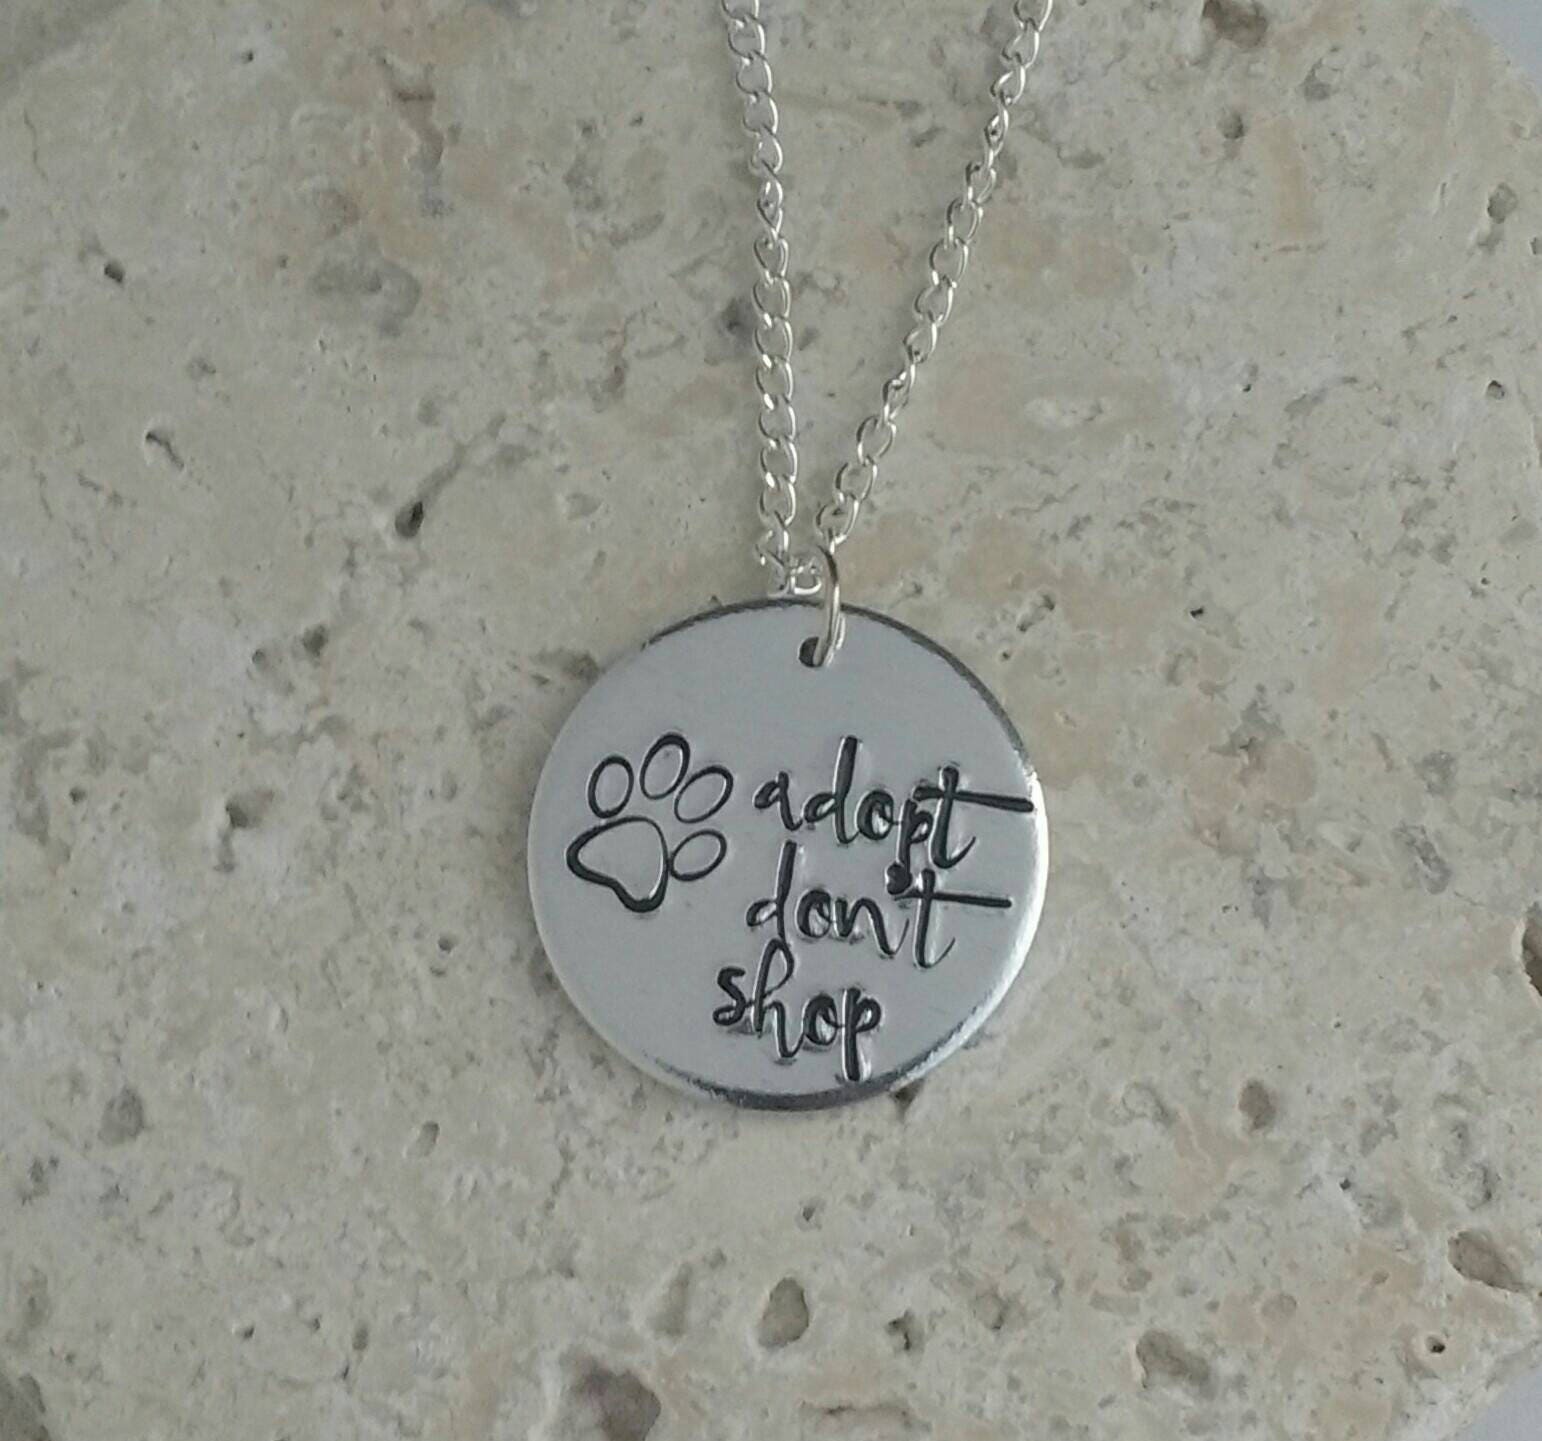 Adopt dont shop paw animal adoption necklace - Vegan message necklace - vegan jewellery - jewelry - animal rights jewellery - handstamped